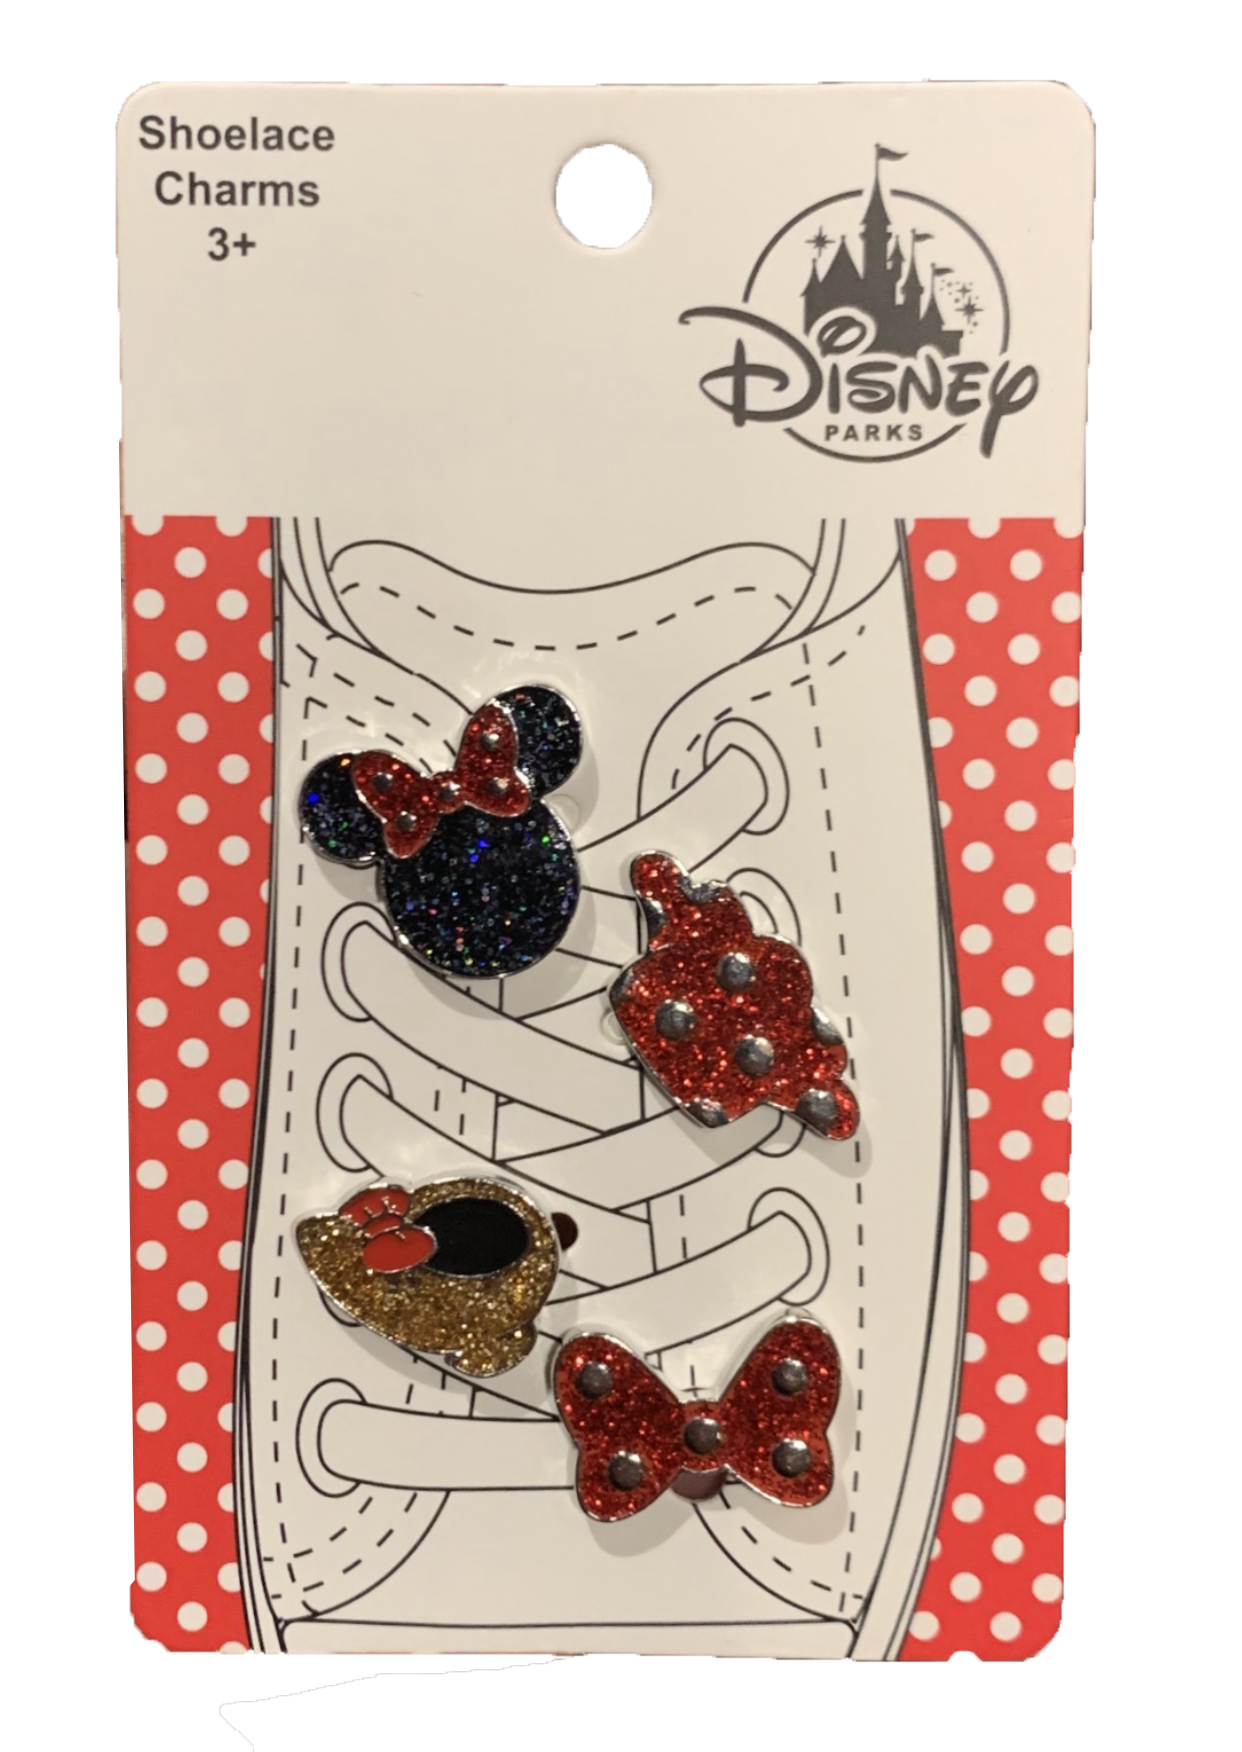 Disney Shoelace Charms - Minnie Mouse